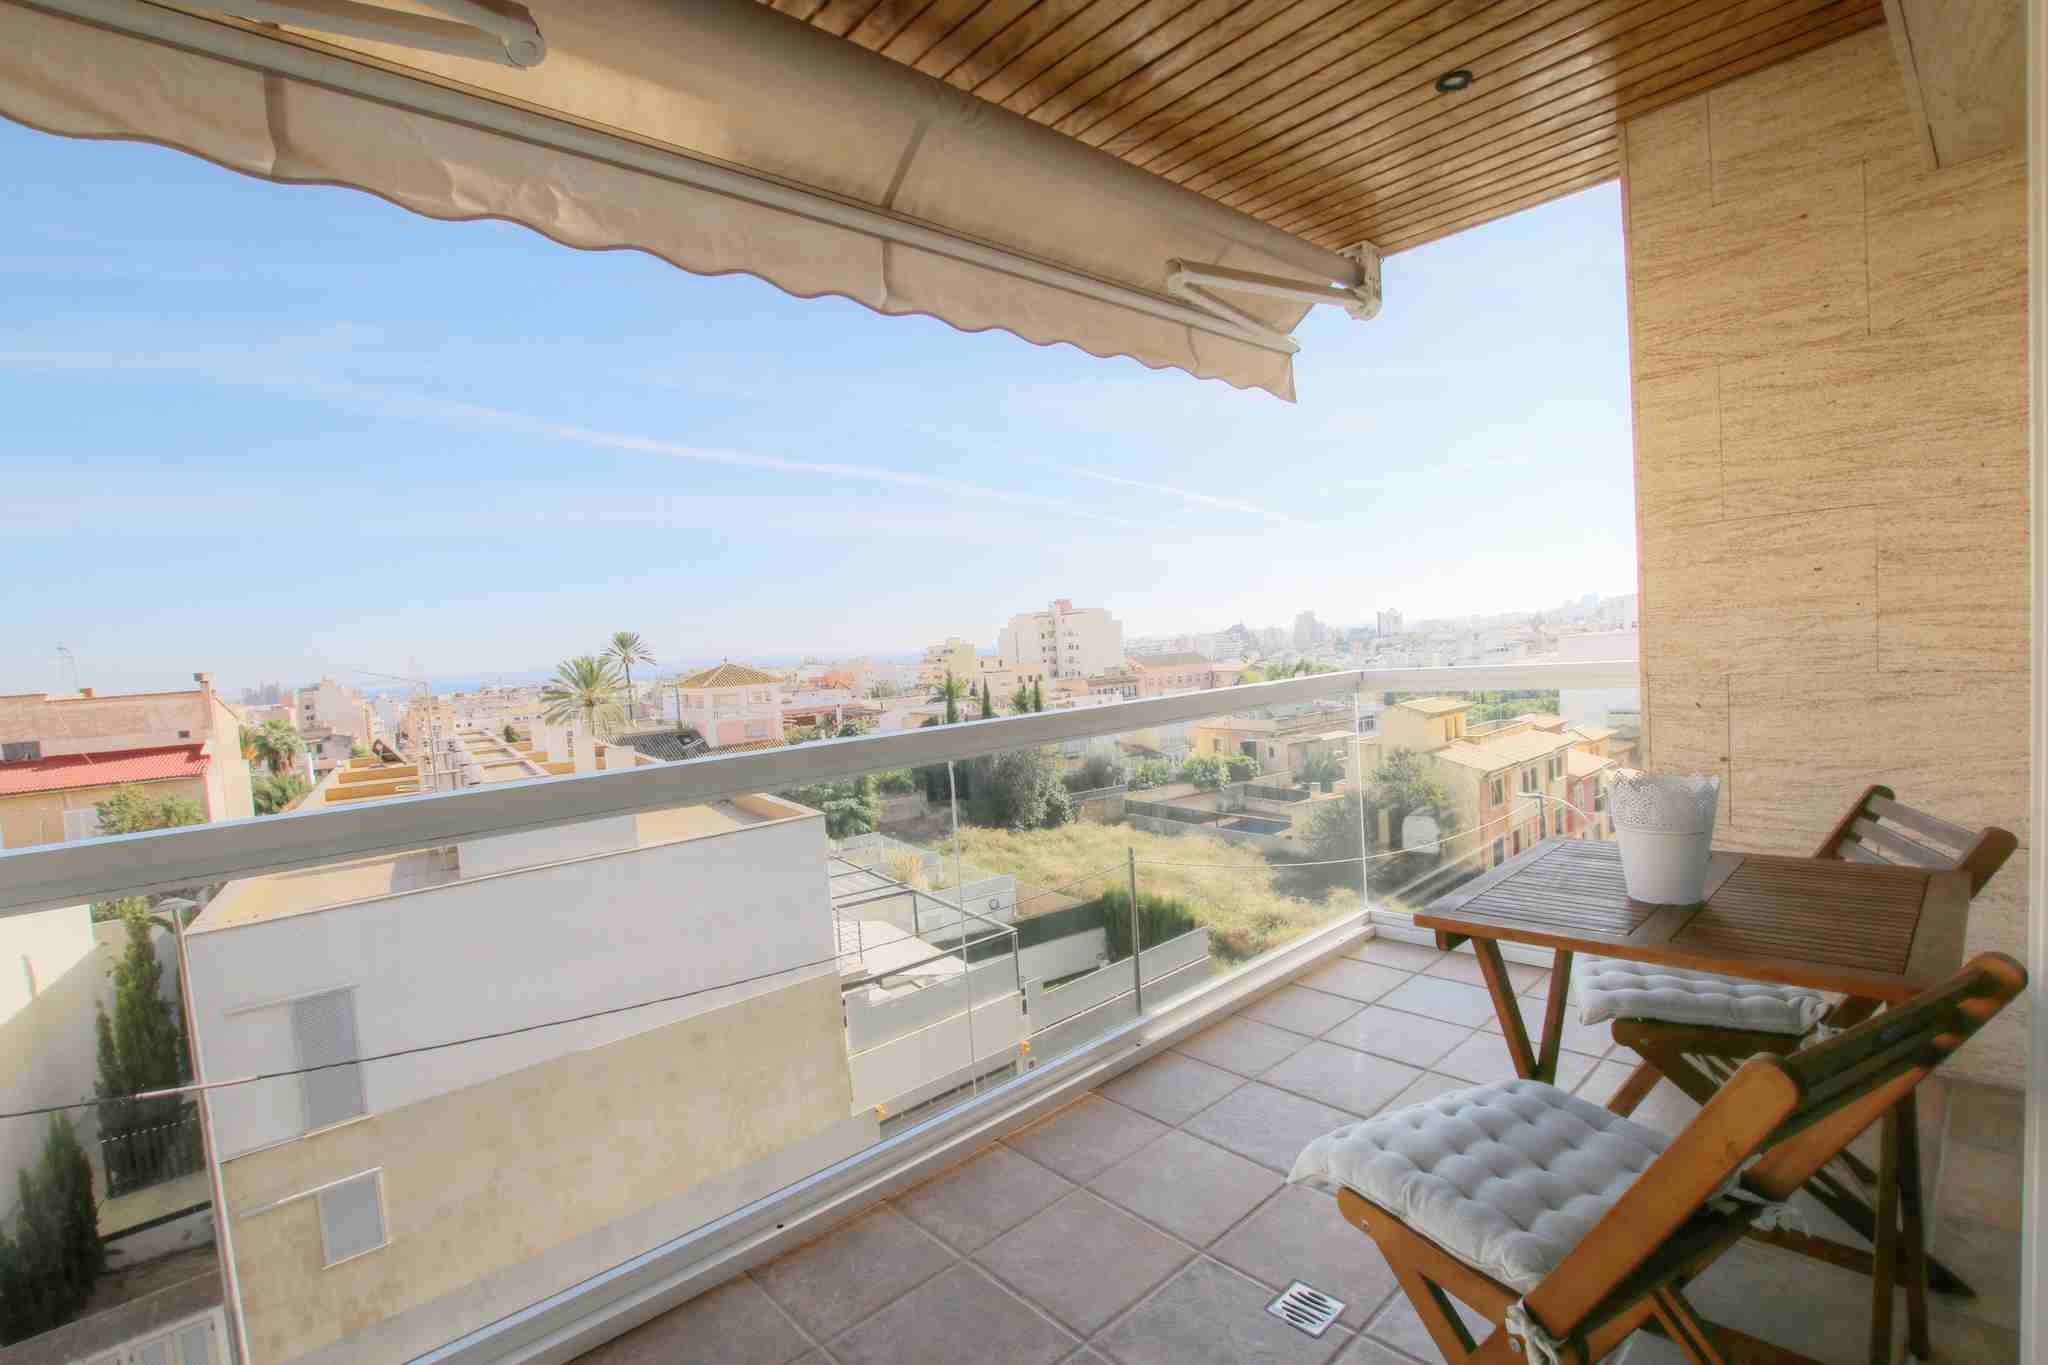 Spacious and modern apartment with amazing views to the city @ Palma de Mallorca